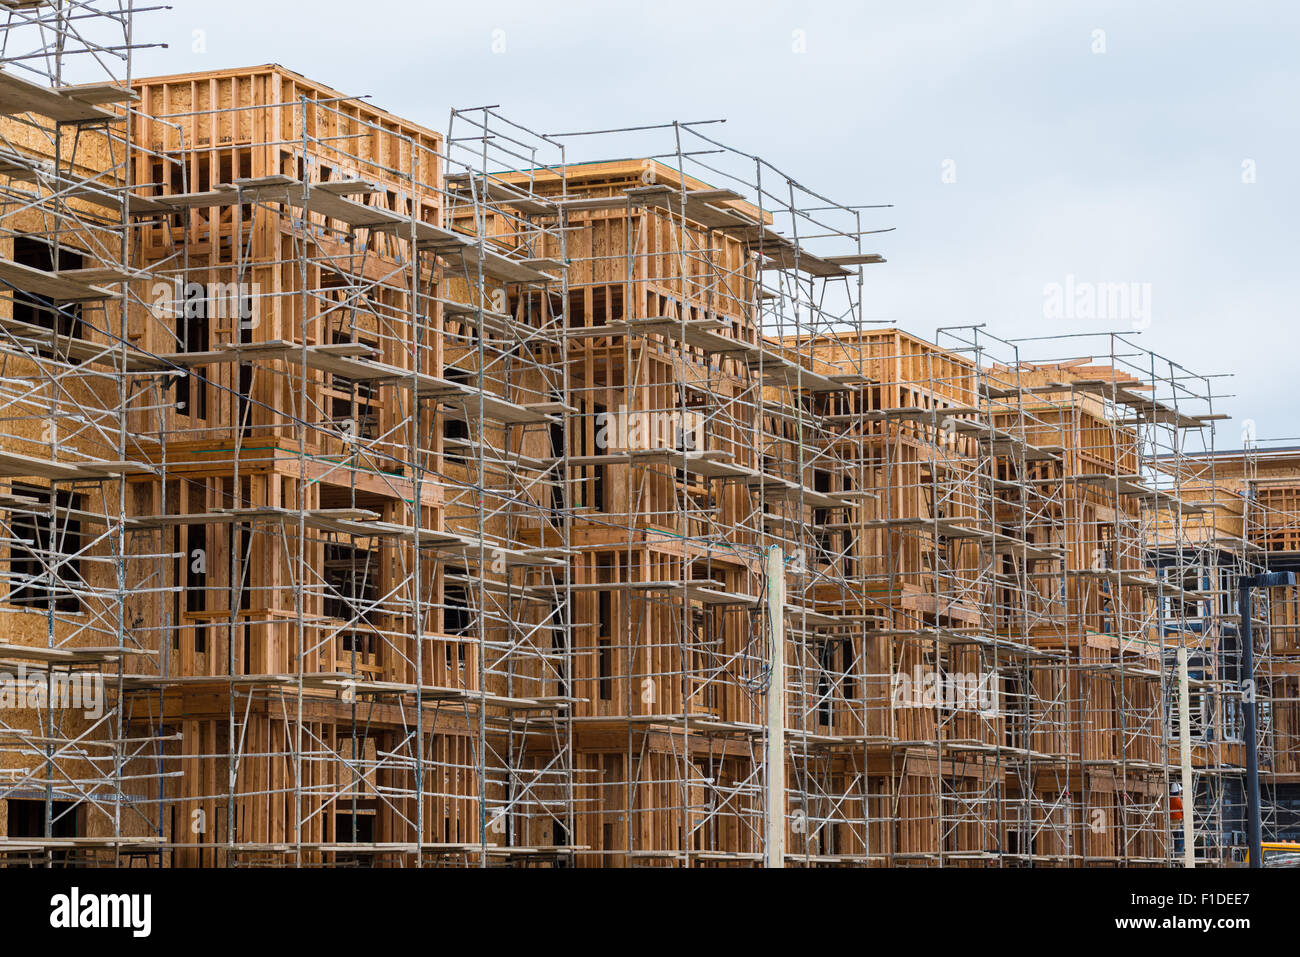 New wood frame apartment or condominium construction - Stock Image